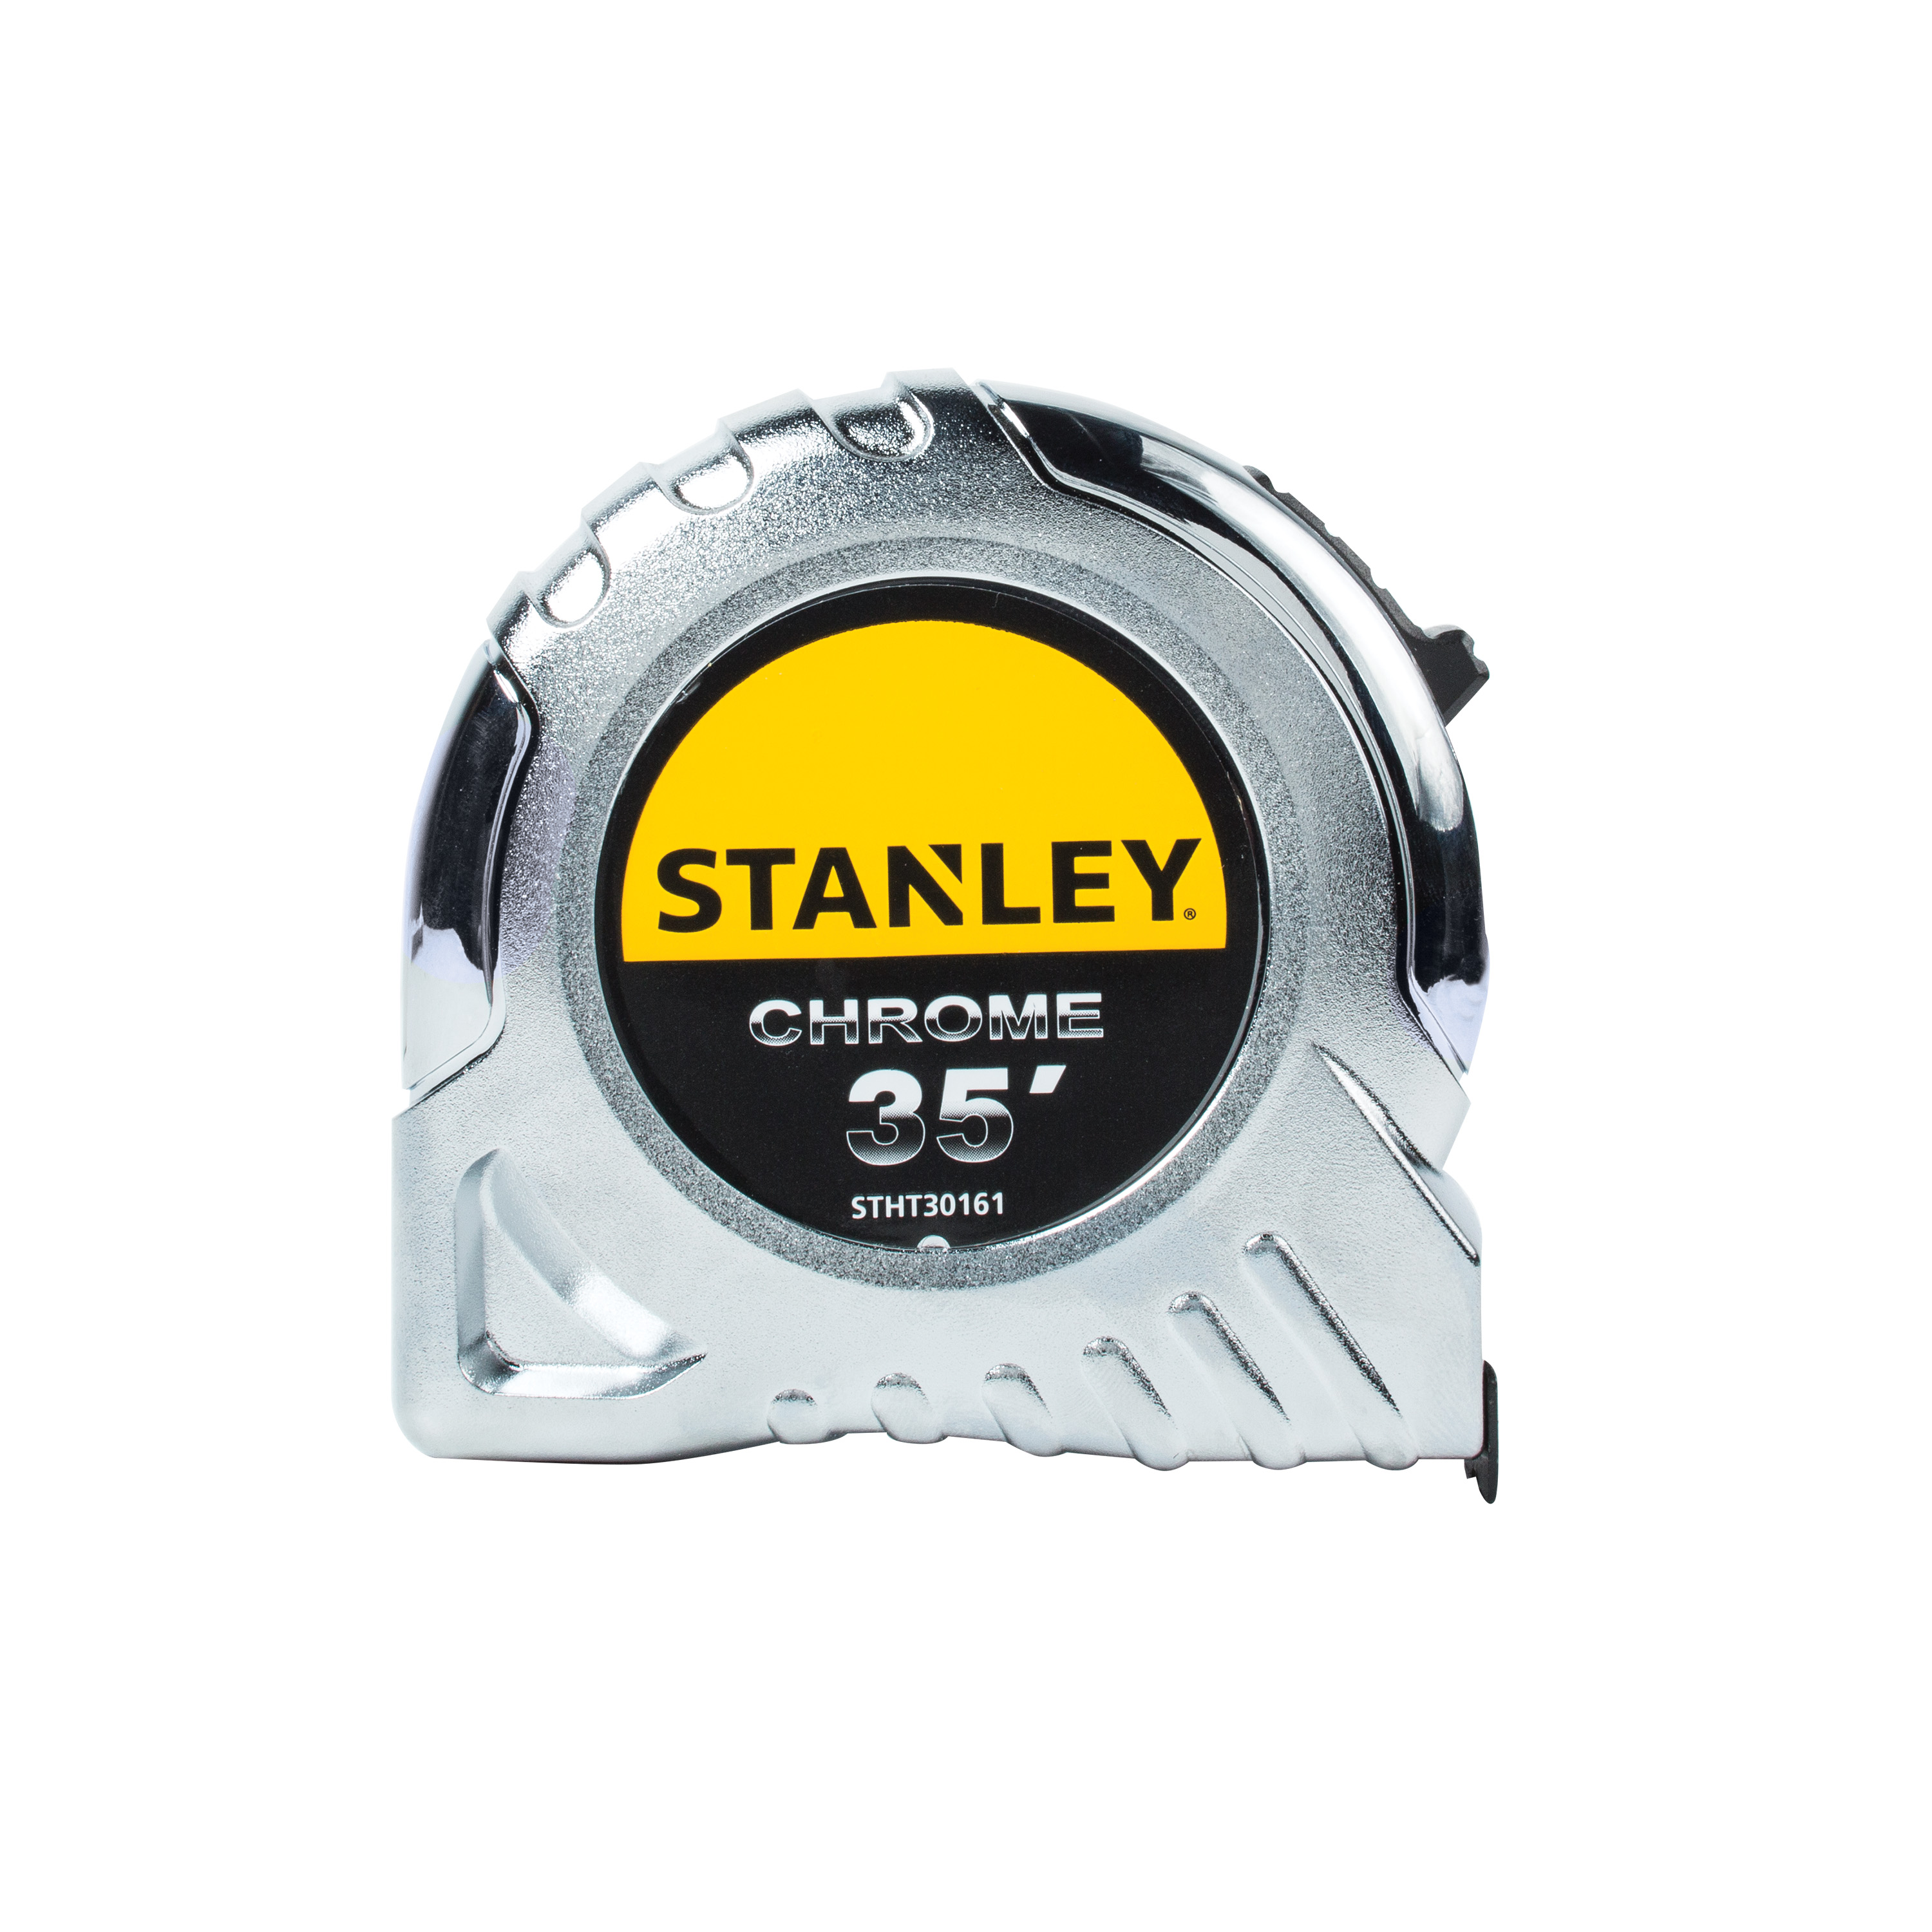 STANLEY® STHT30161W 35' Chrome Tape Measure